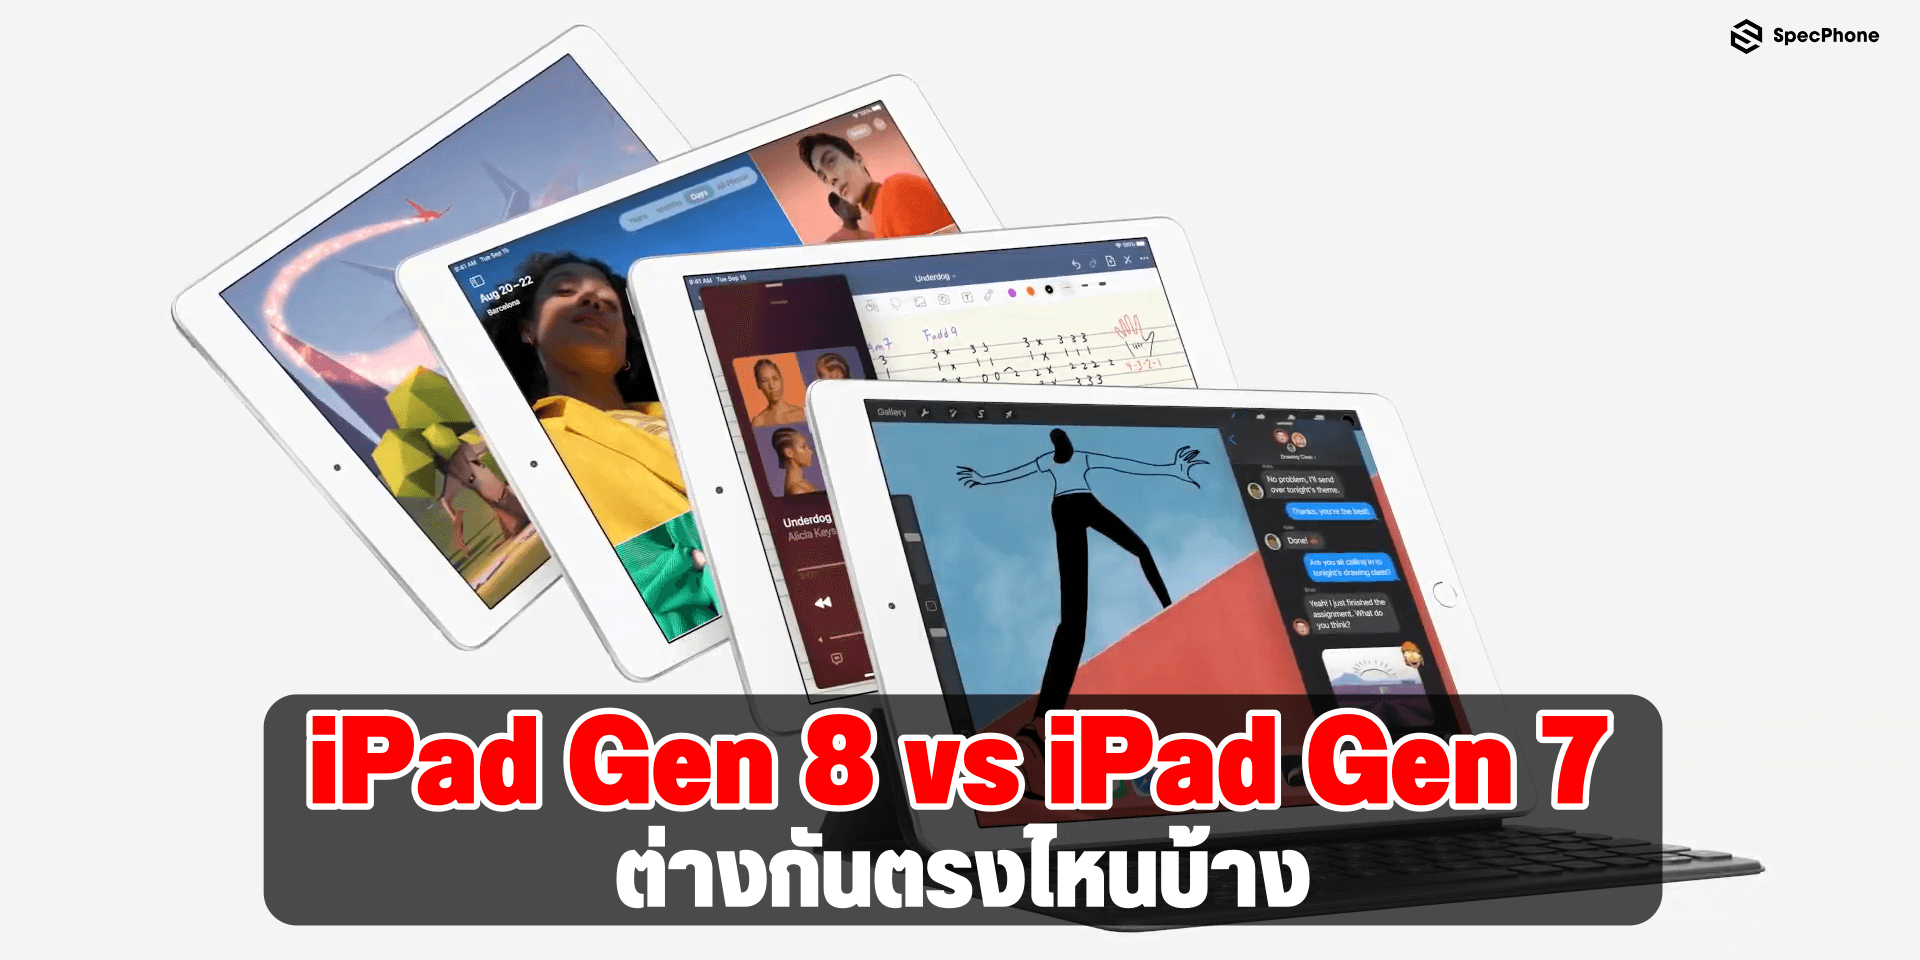 ipad gen 8 vs ipad gen 7 cover 1